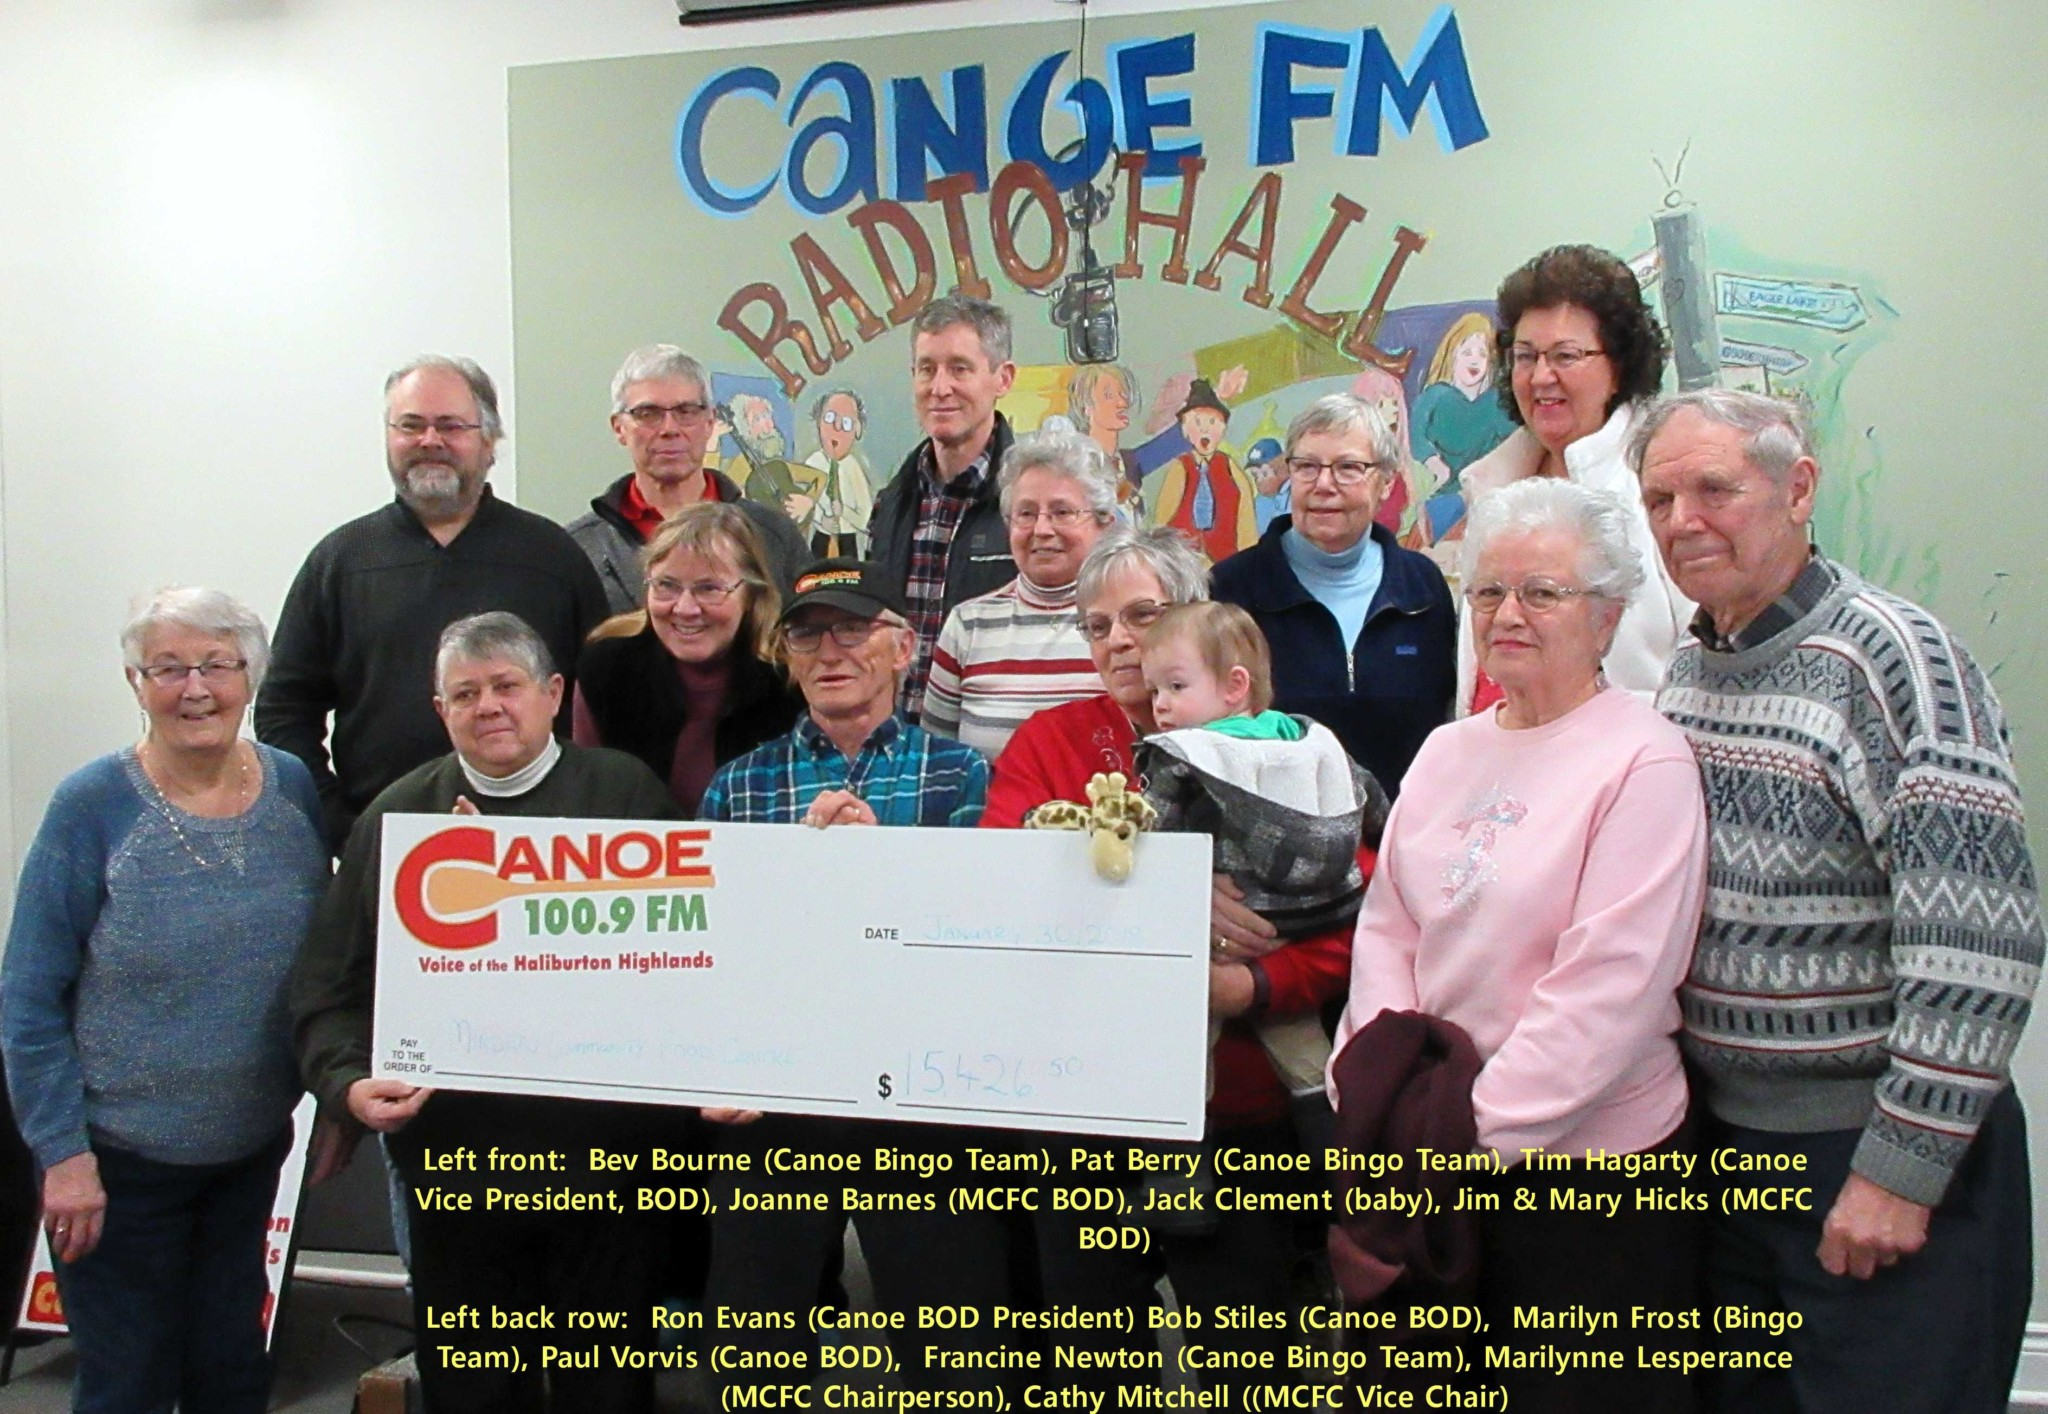 The Minden Community Food Centre were presented with a cheque for $15,426.50 from the proceeds of the Canoe FM Bingo on January 30, 2018.